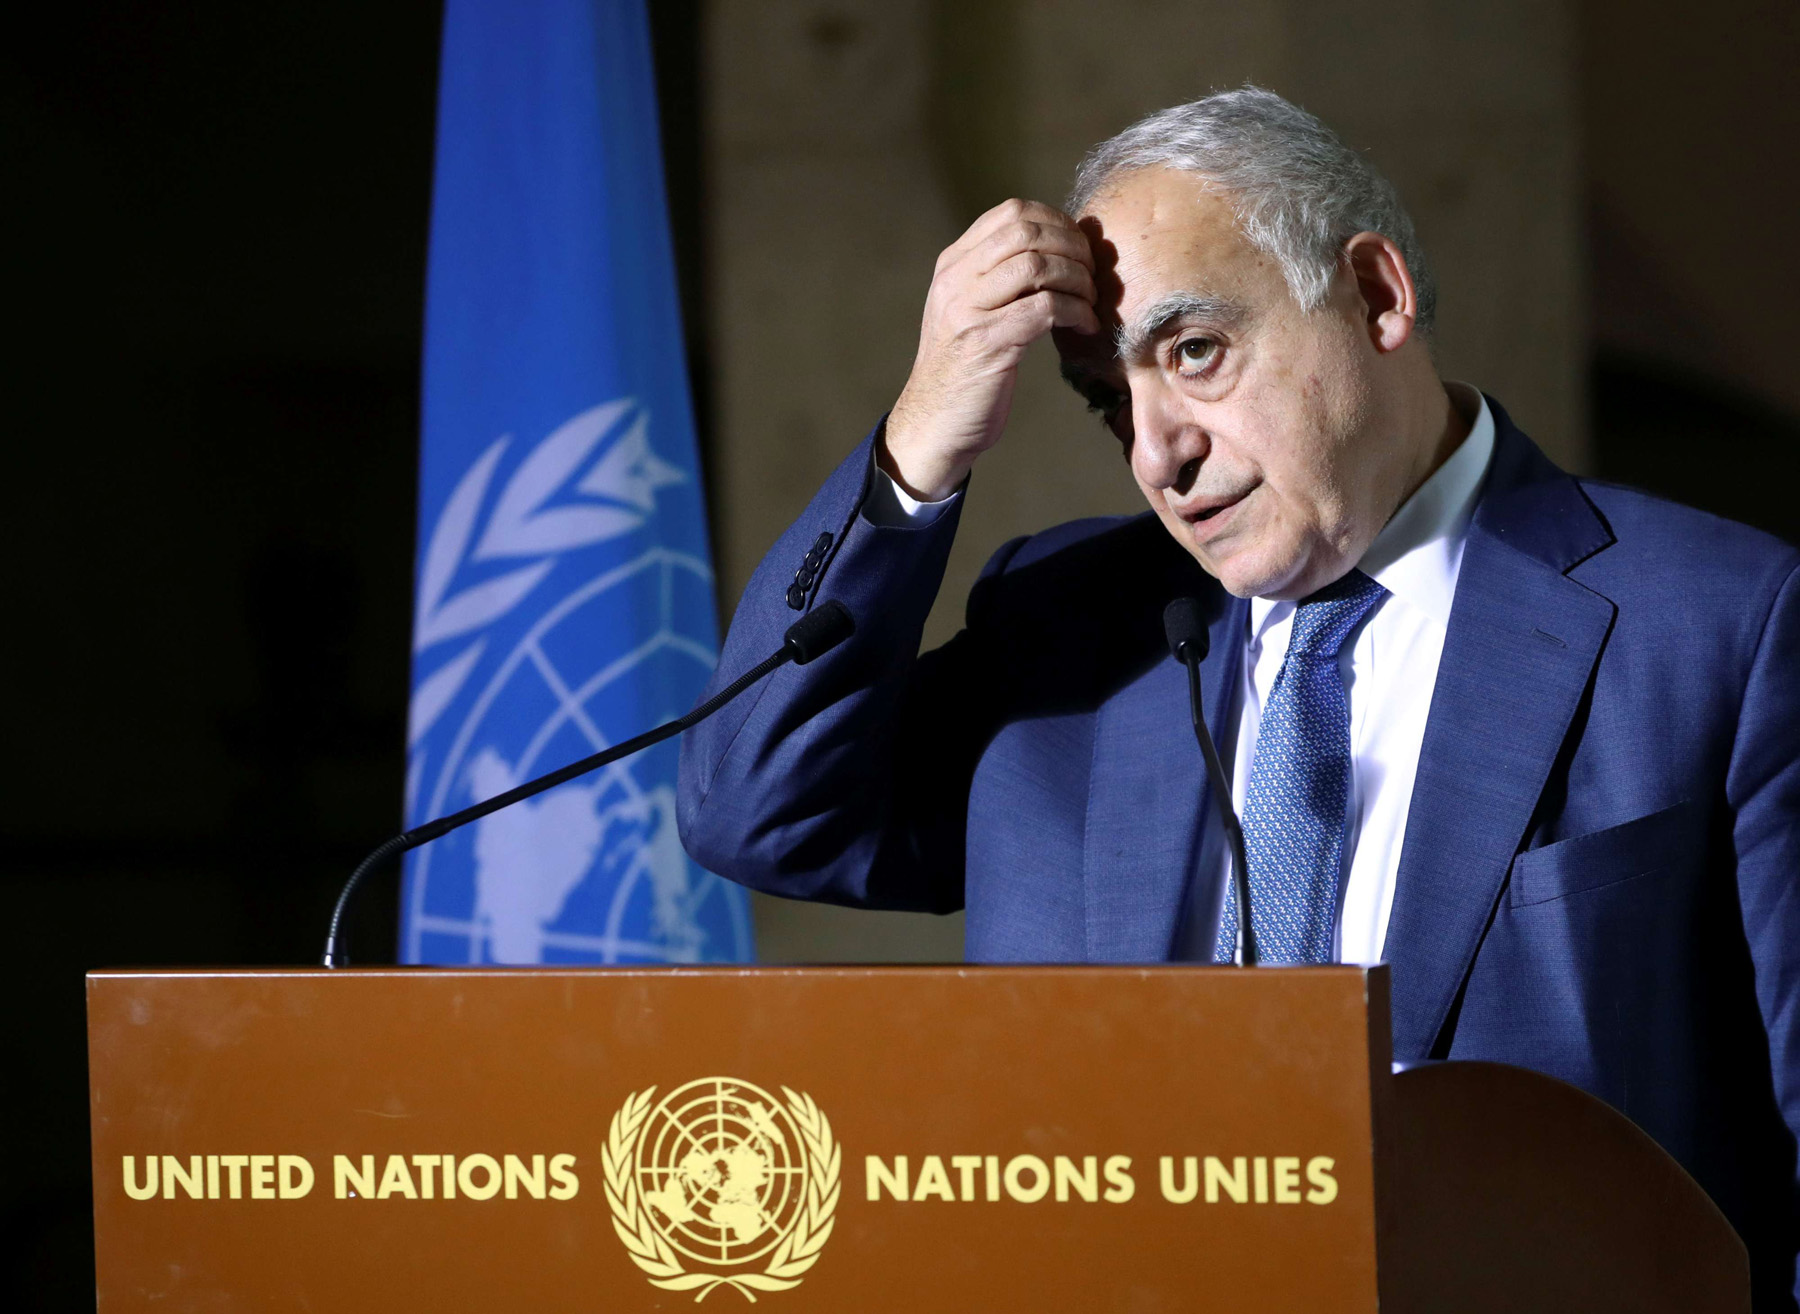 UN Special Envoy for Libya Ghassan Salame delivers a news briefing after a meeting of the 5+5 Libyan Joint Military Commission in Geneva, Switzerland, February 6. (Reuters)